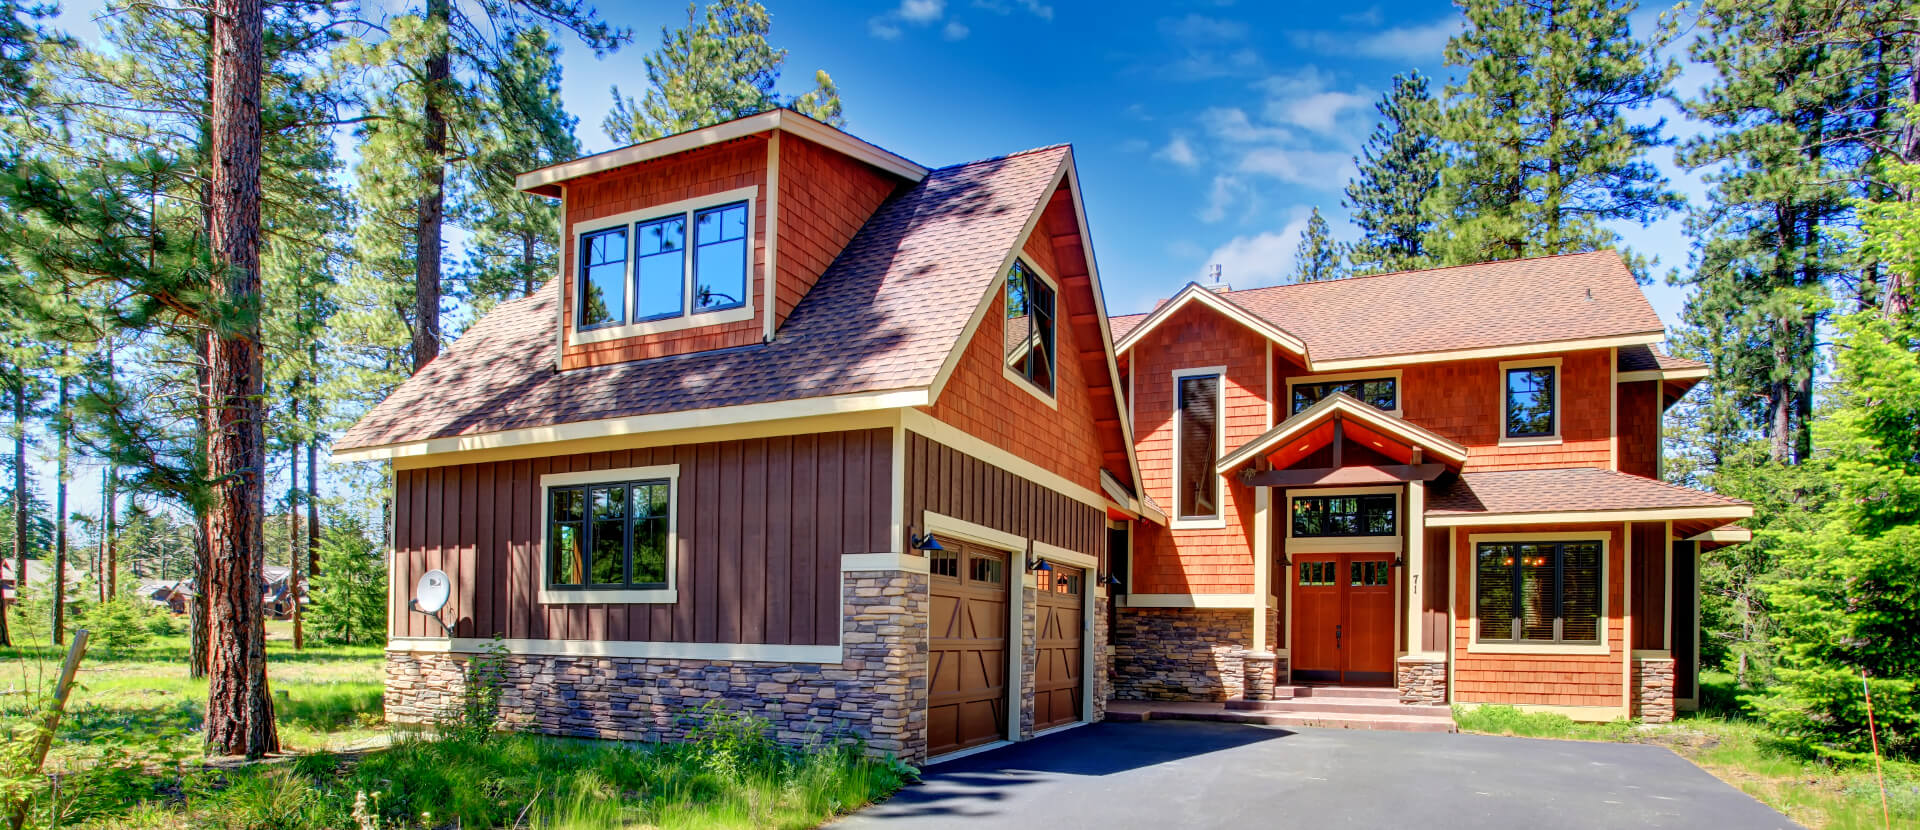 Siding Contractor Styles